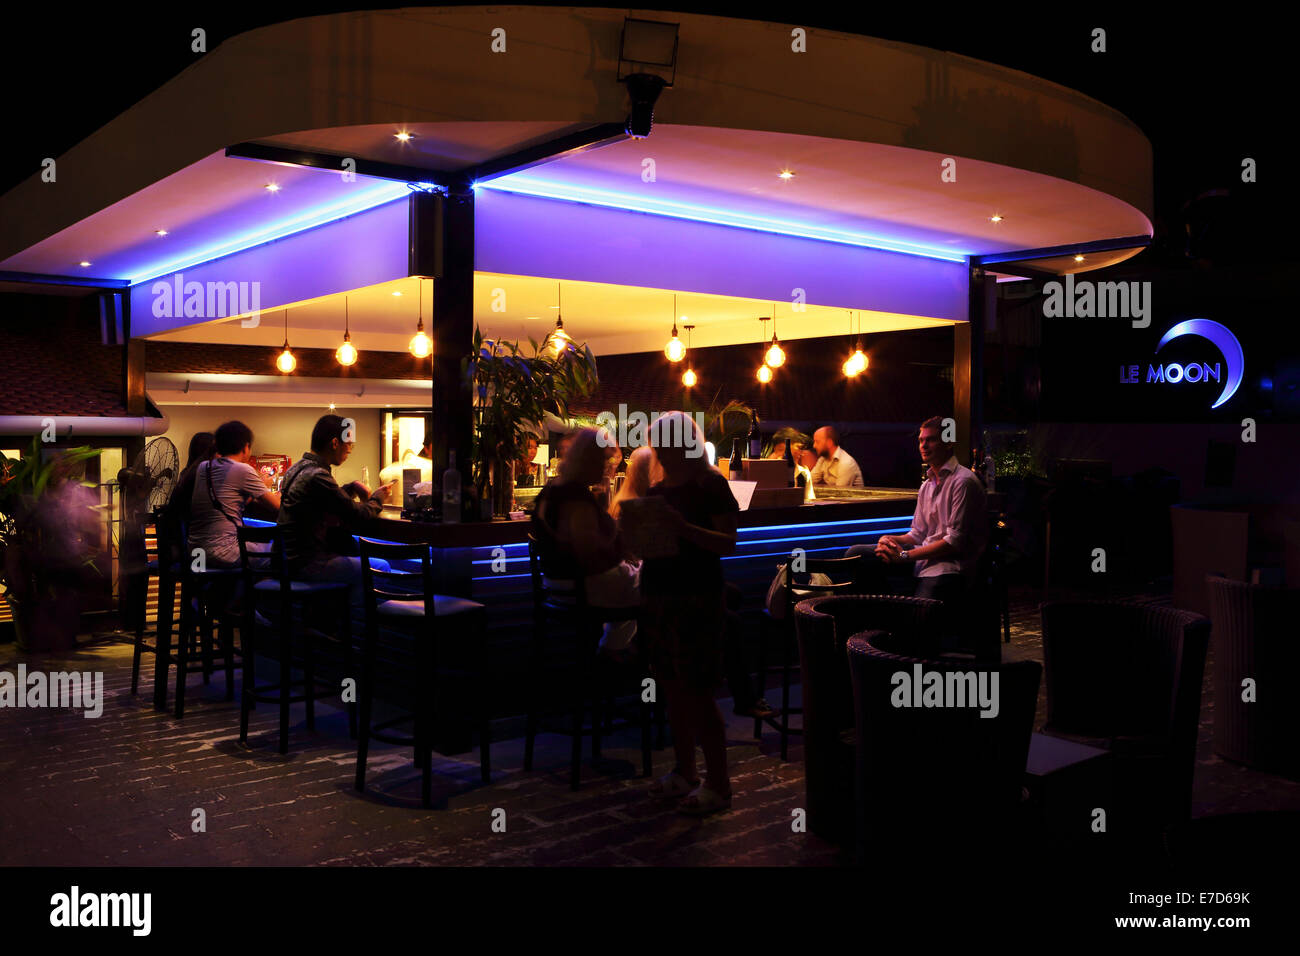 Le Moon rooftop bar in Phnom Penh, Cambodia. - Stock Image